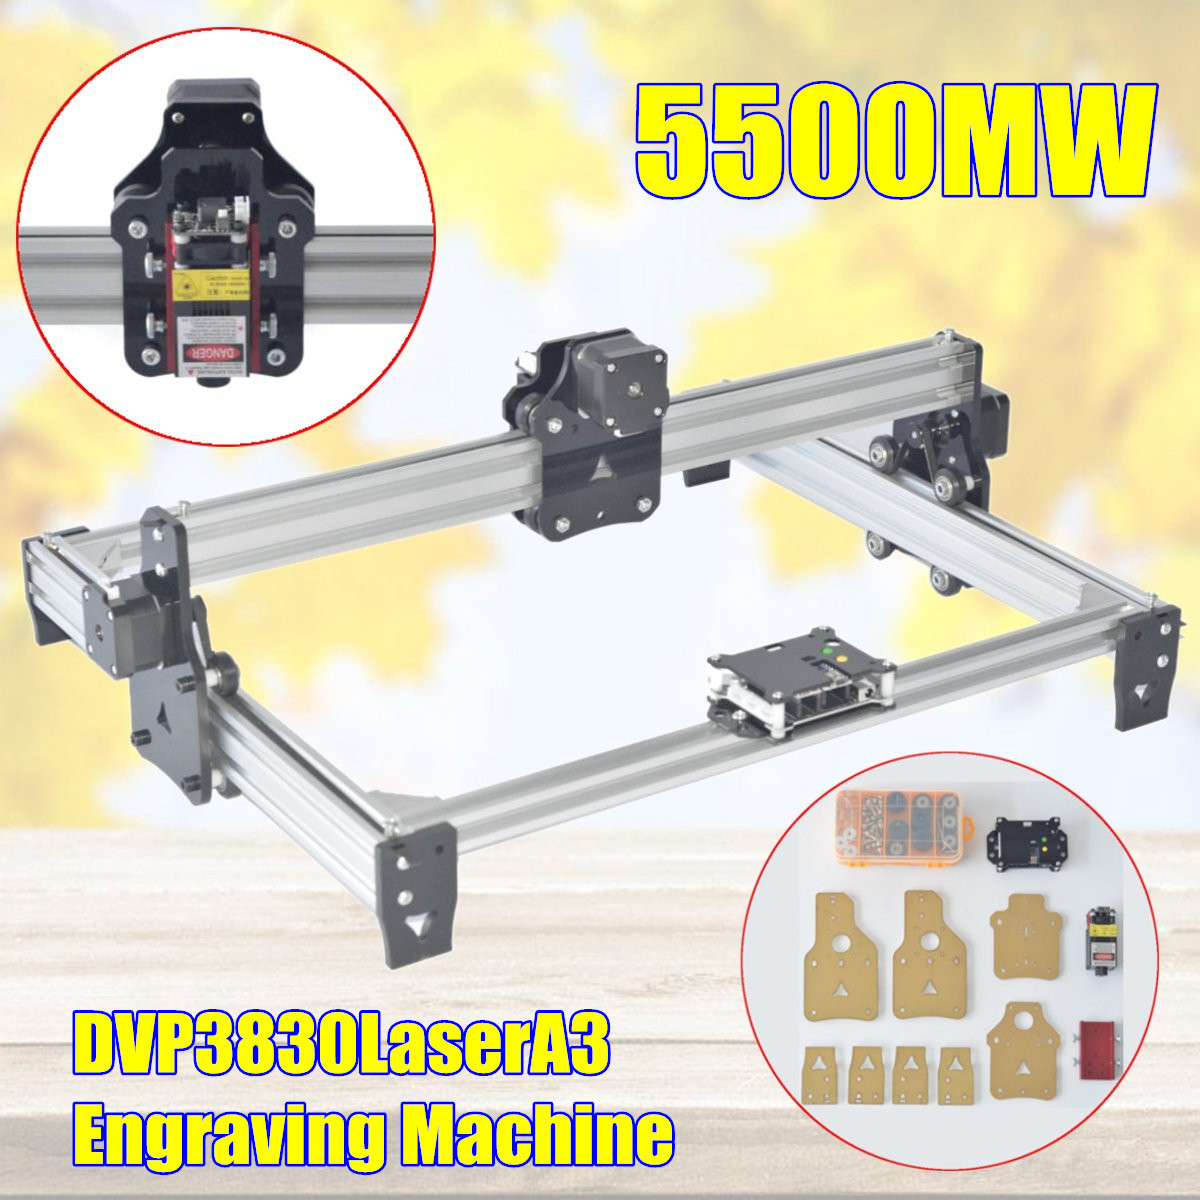 5500mw DVP 3830 Laser A3 Engraving Machine,DIY Laser Engraver Machine,Wood Router,laser cutter,cnc router,Woodworking Machinery матрас roll matratze feder 1000 l l 180x190 page 6